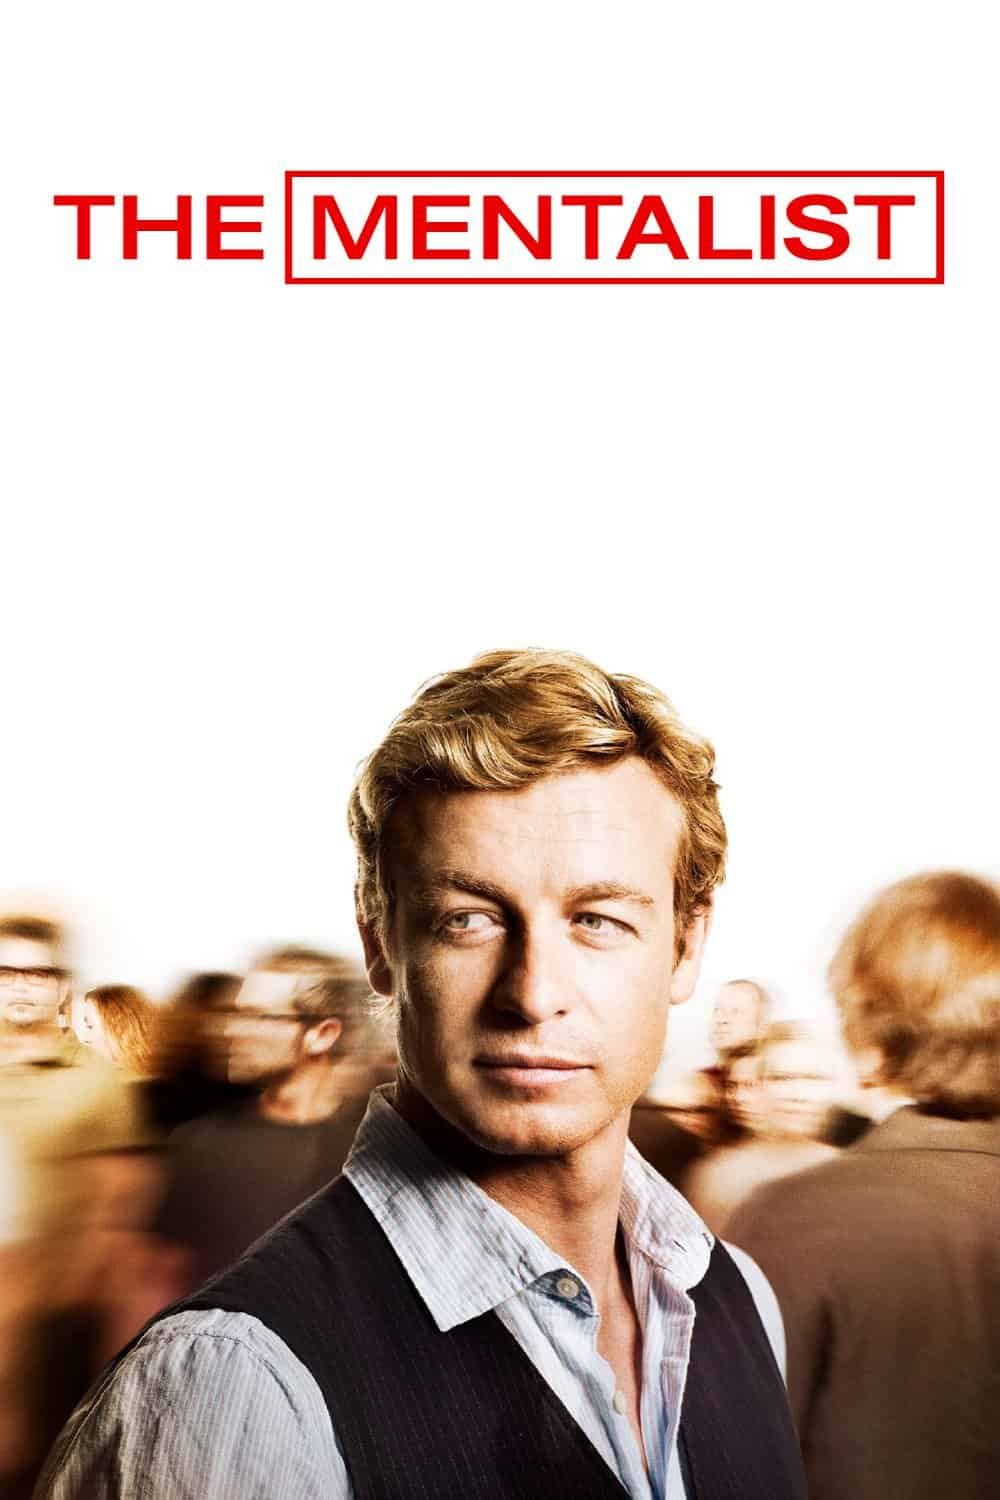 The Mentalist, 2008